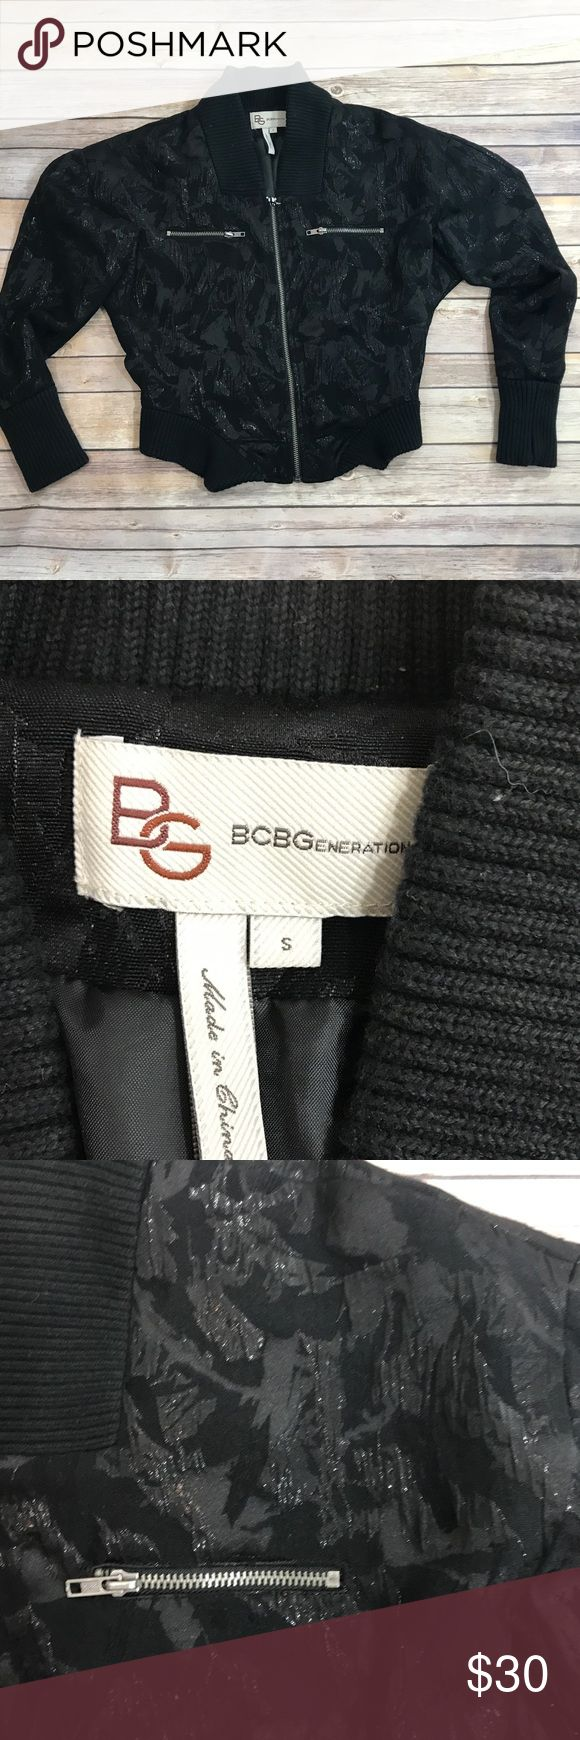 BCBGeneration bomber  jacket Black jacket with jacquard and shimmer detail. Stretchy cuffs and waistband.  Zipper pockets. With silver hardware. 19 inches long. offers welcome. BCBGeneration Jackets & Coats